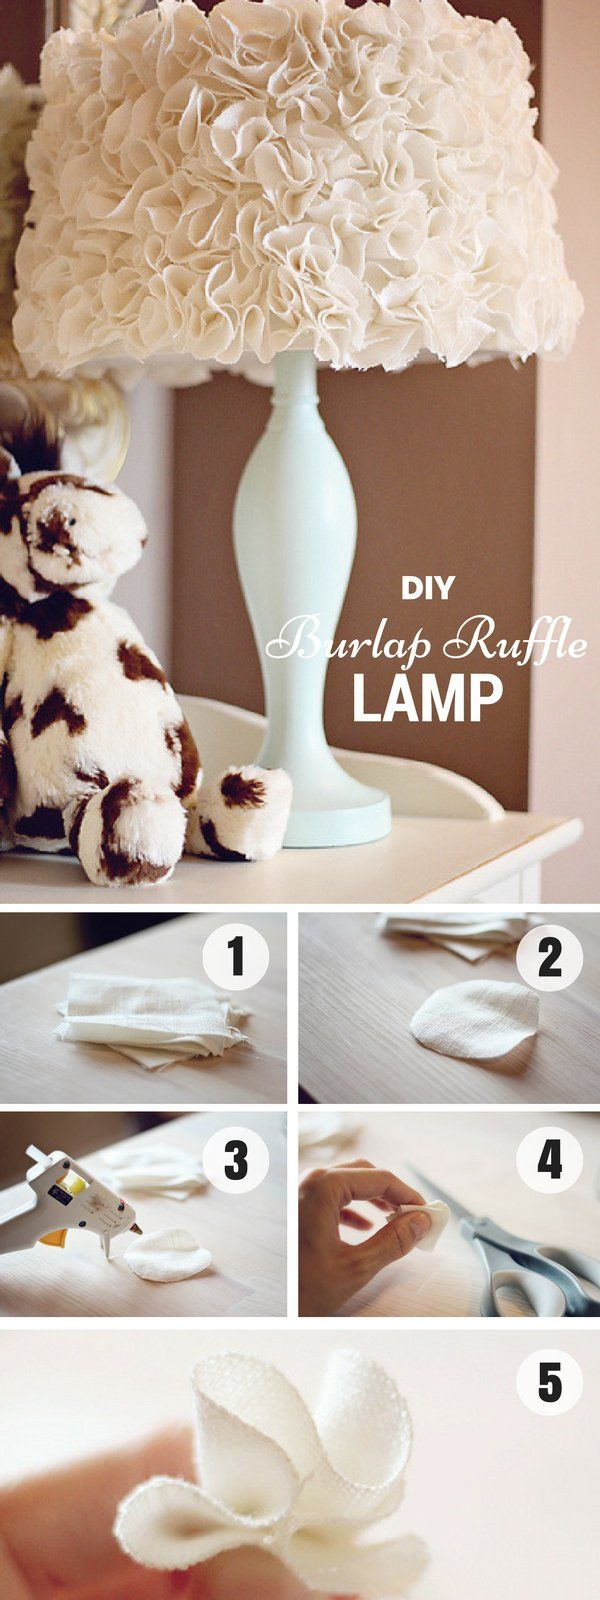 Make this easy DIY burlap ruffle lampshade @istandarddesign